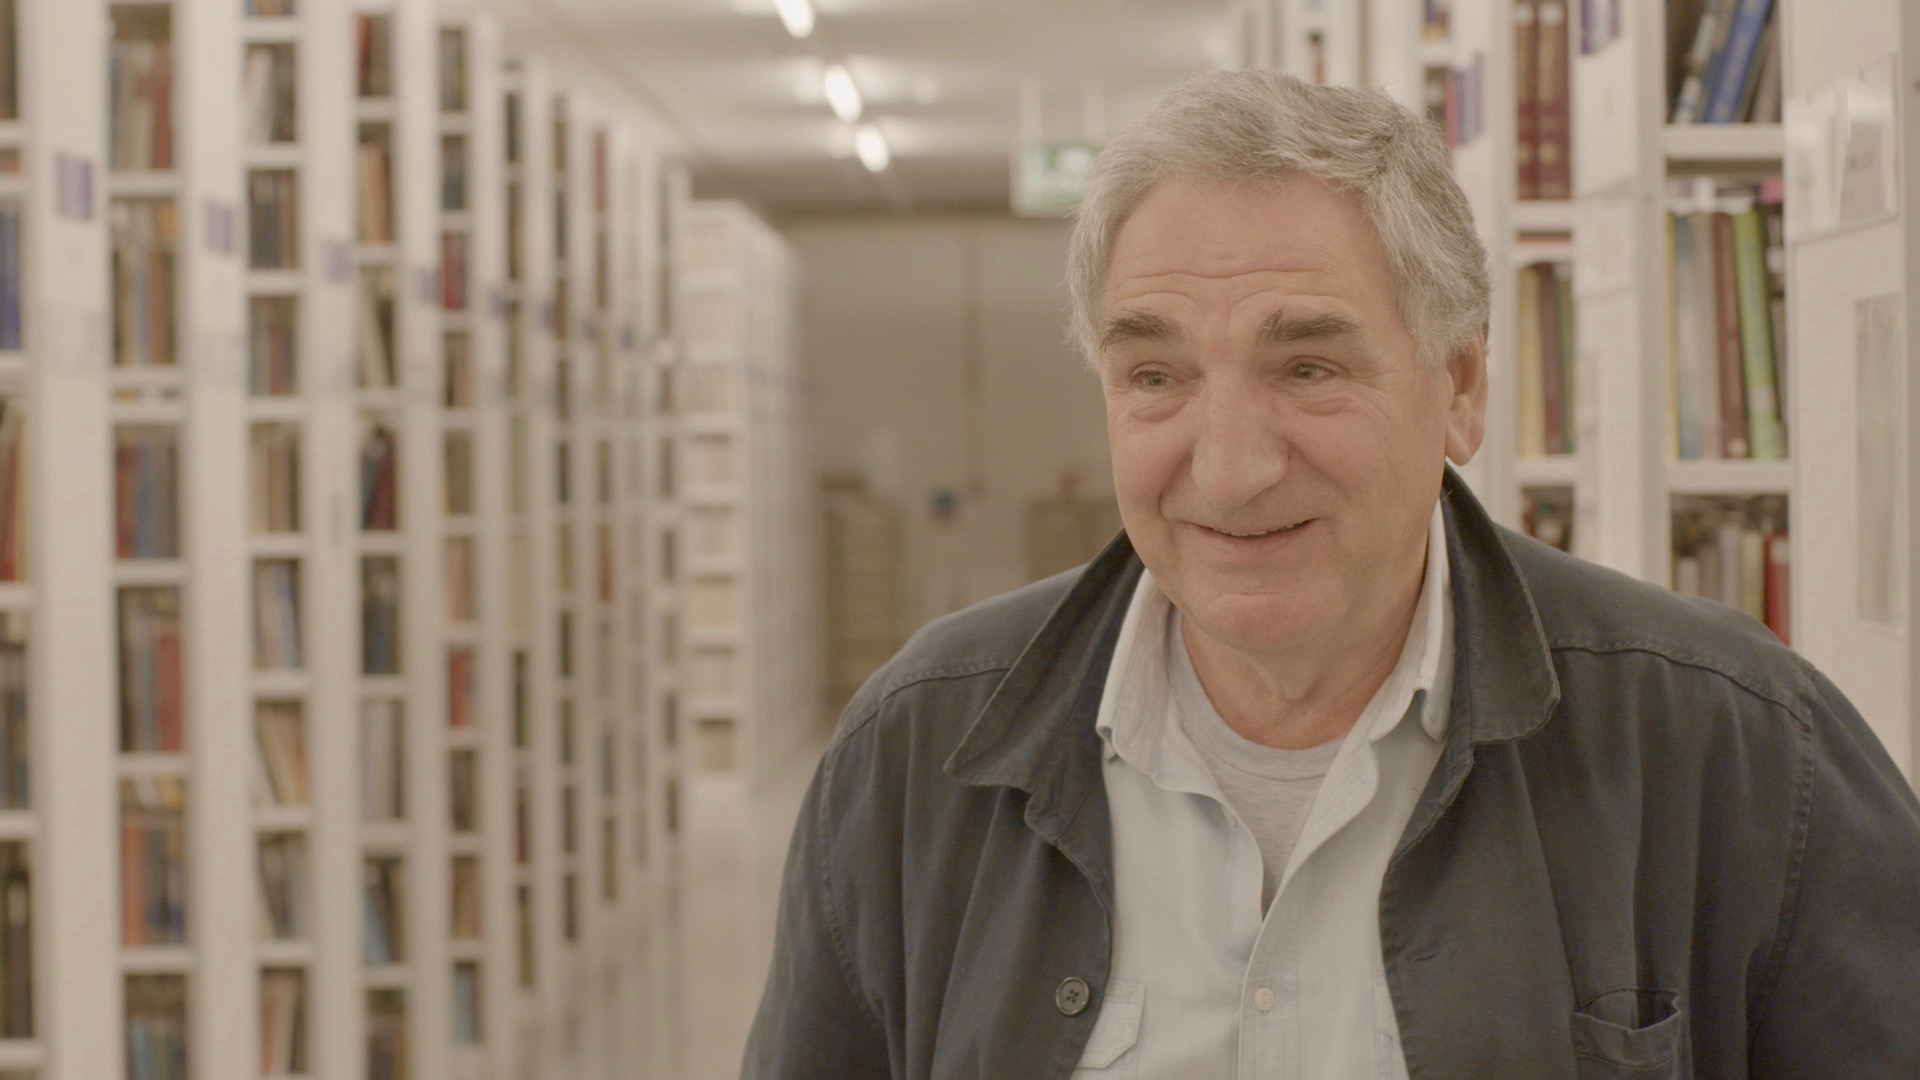 Jim Carter at the British Library